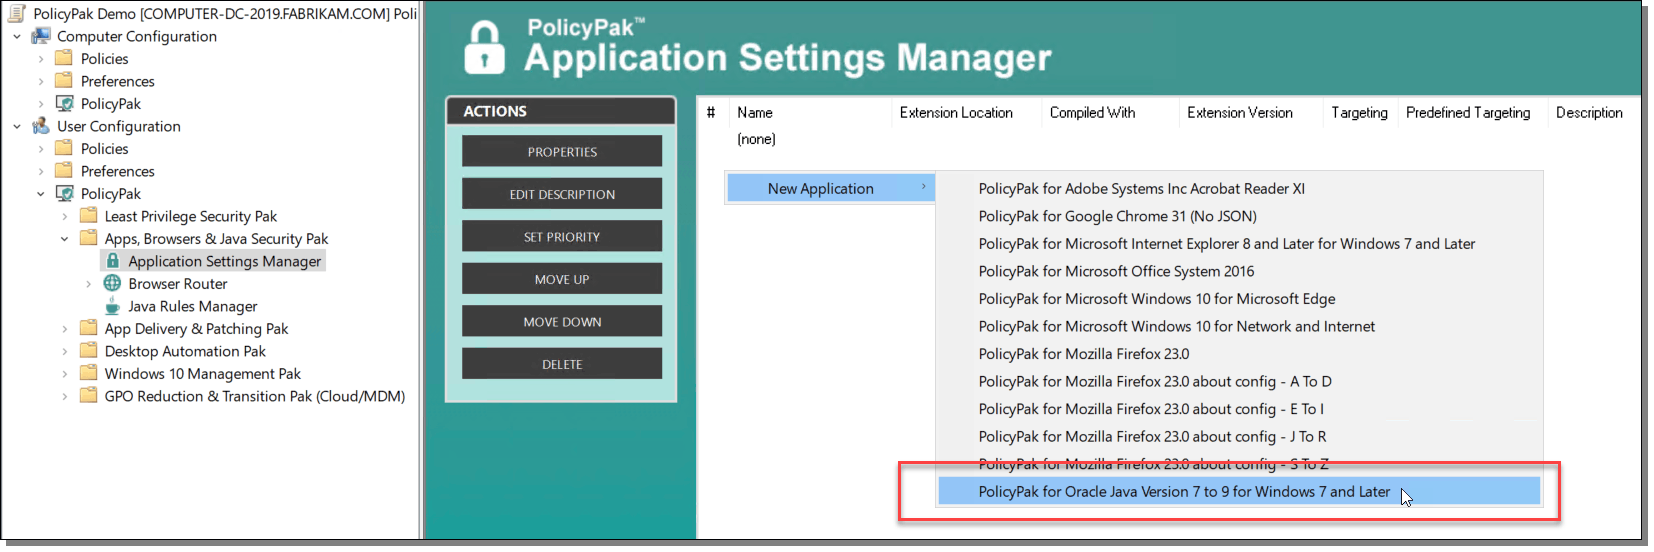 Application Settings Manager